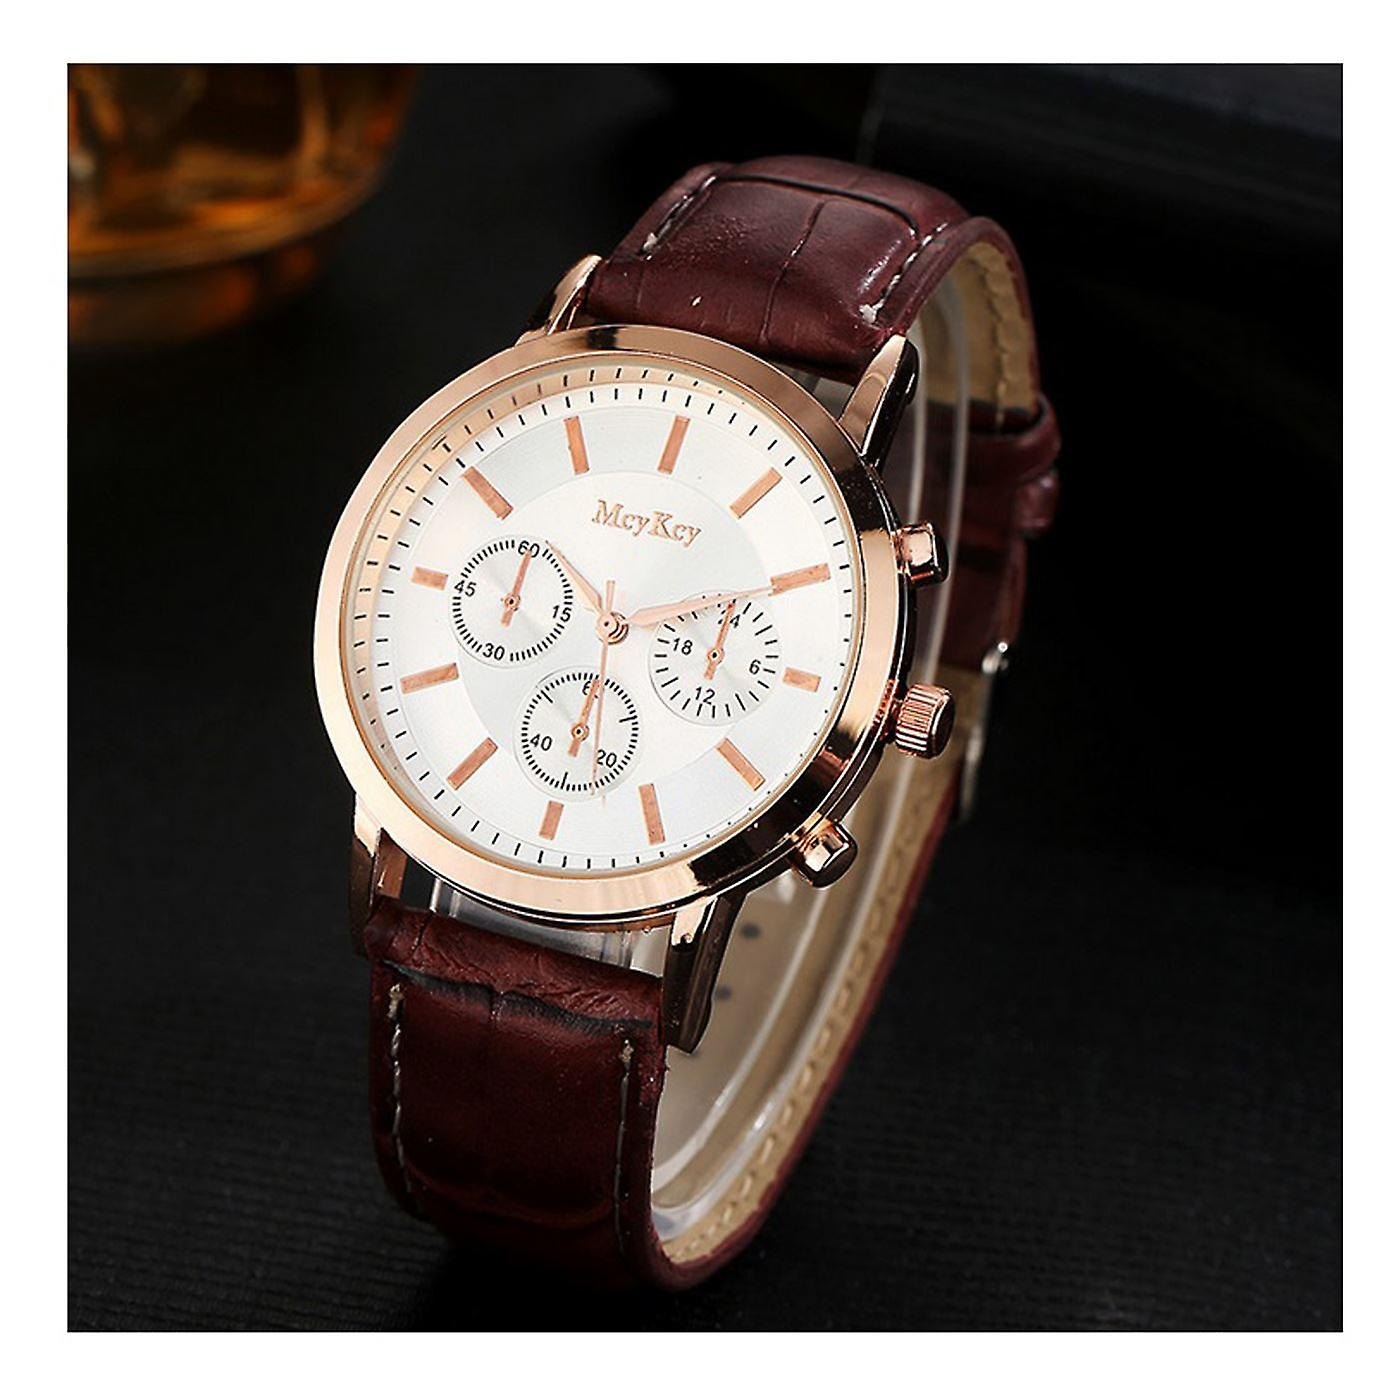 Luxury Rose Gold Chrono Watch Time Called Elegant